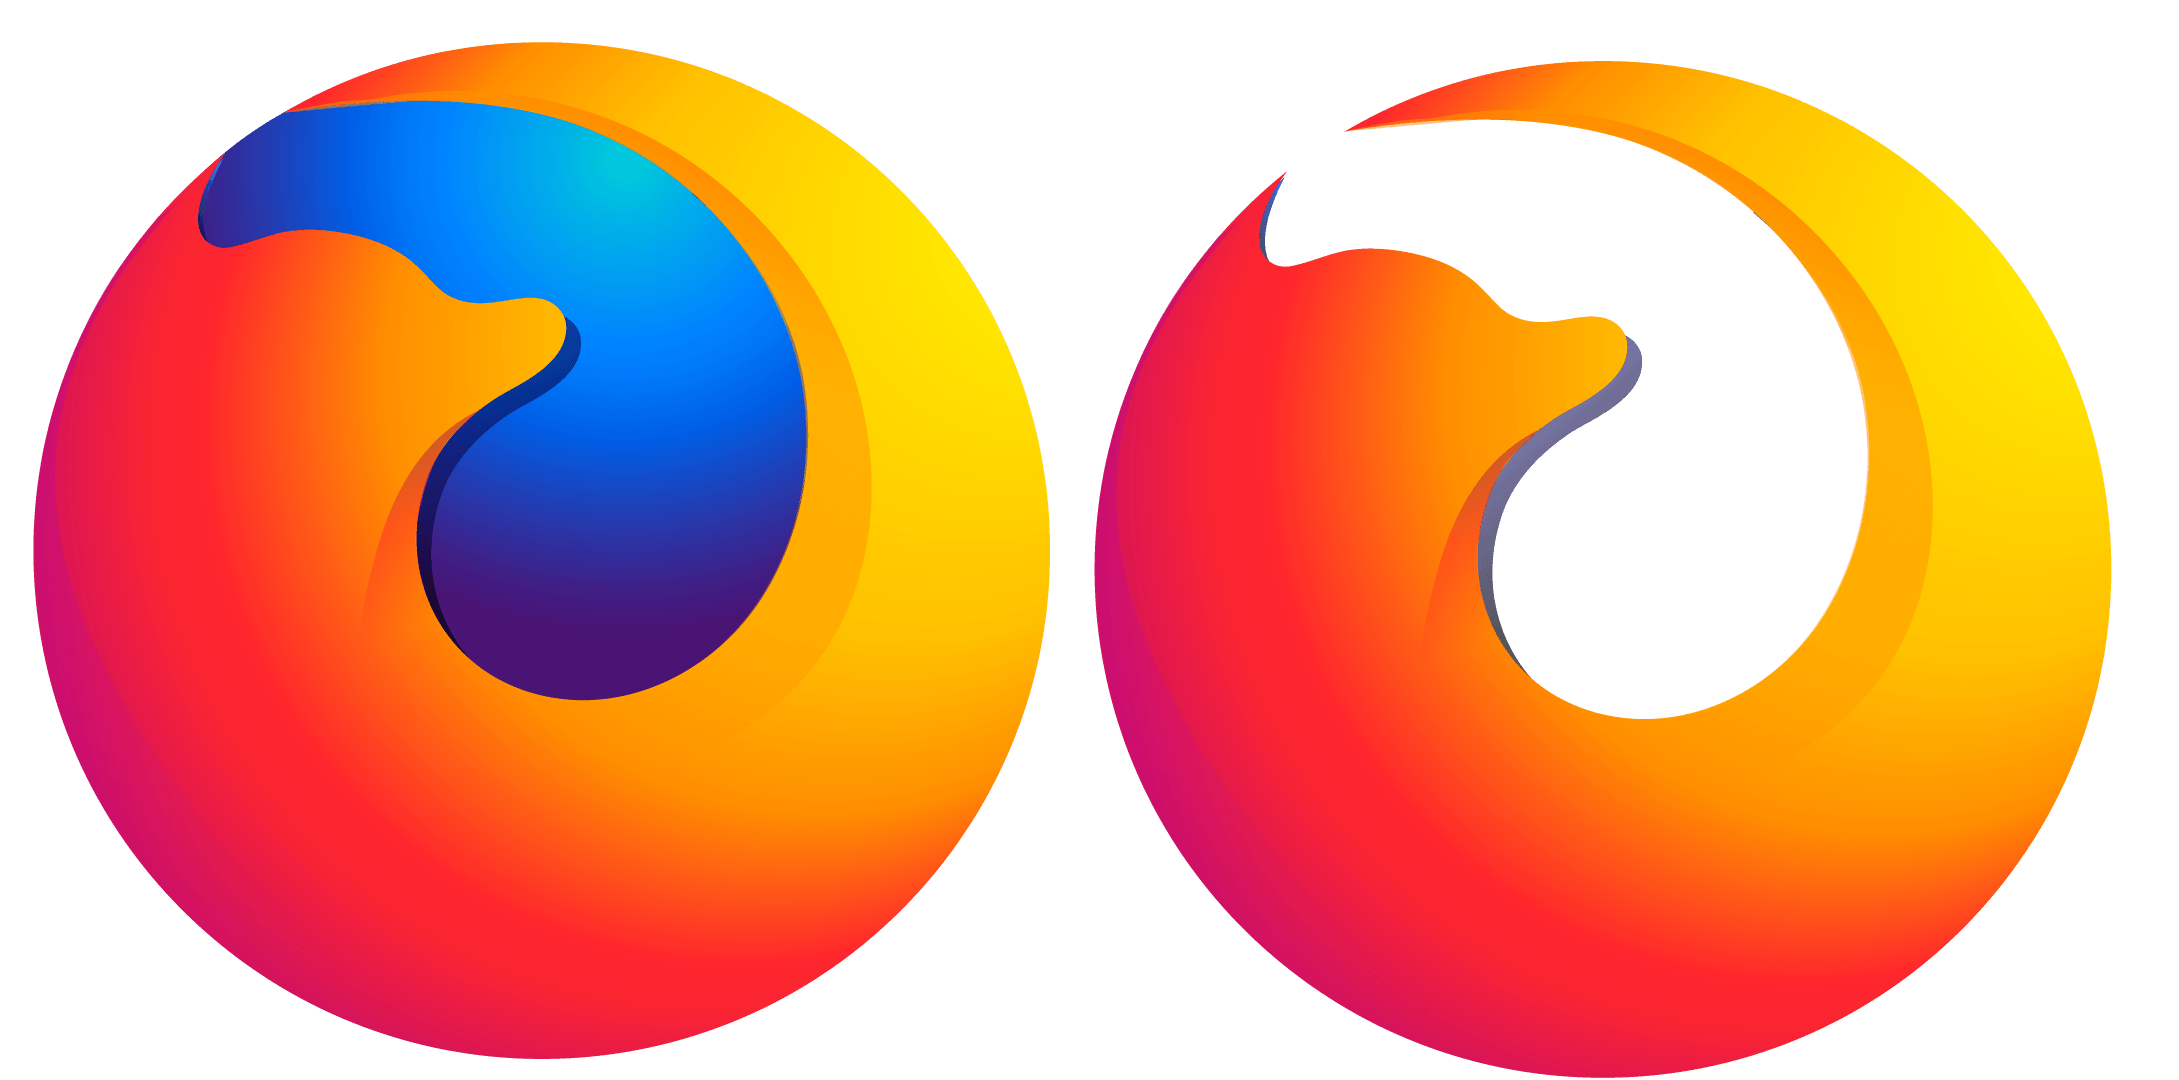 Firefox Logo - firefox logo ideas : graphic_design